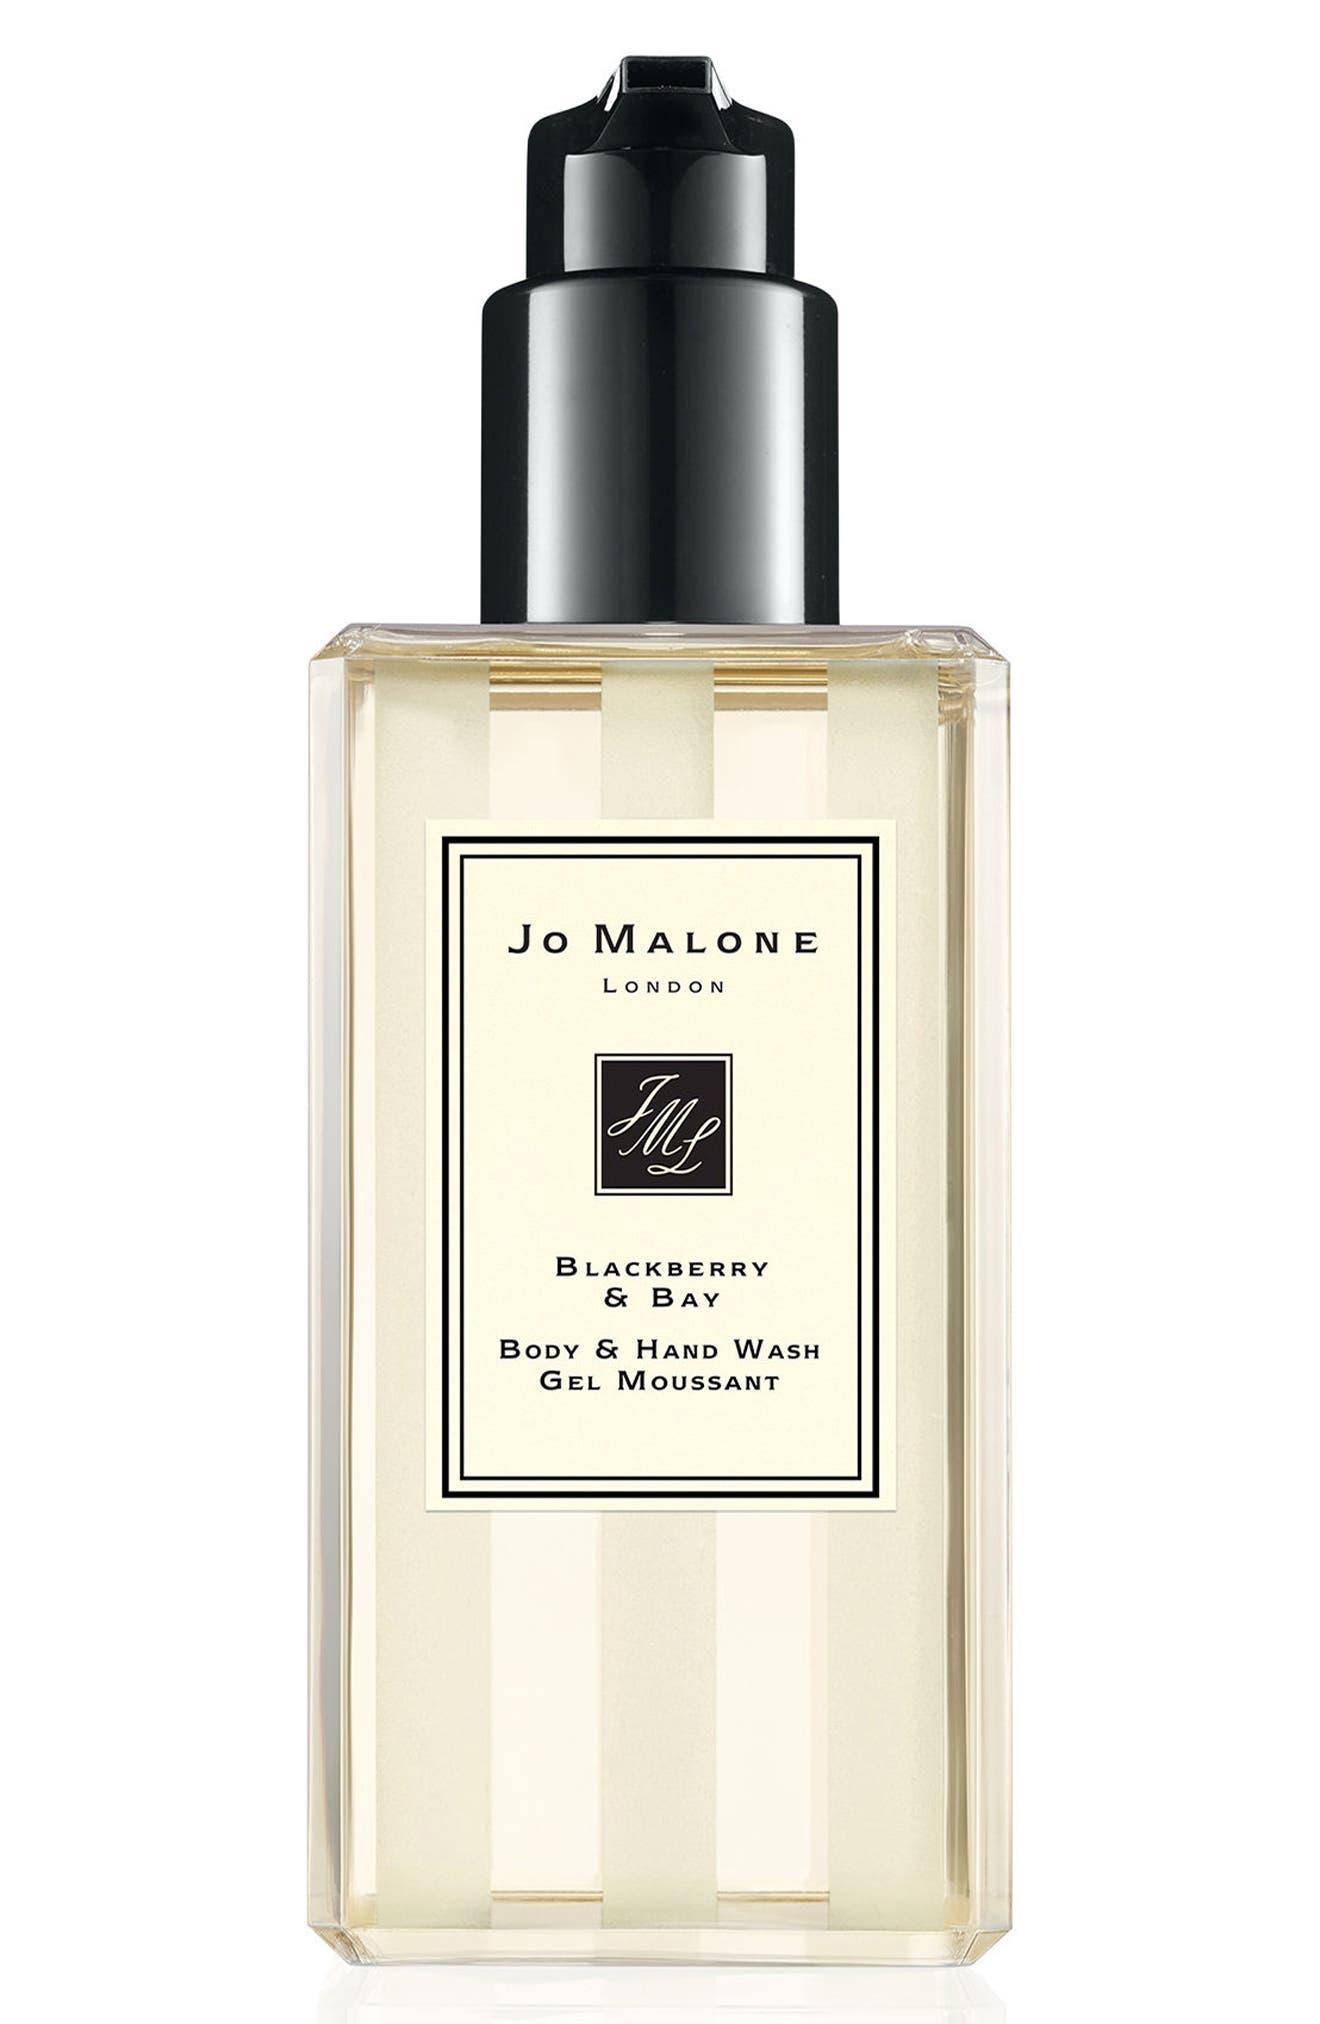 Jo Malone™ 'Blackberry & Bay' Body & Hand Wash